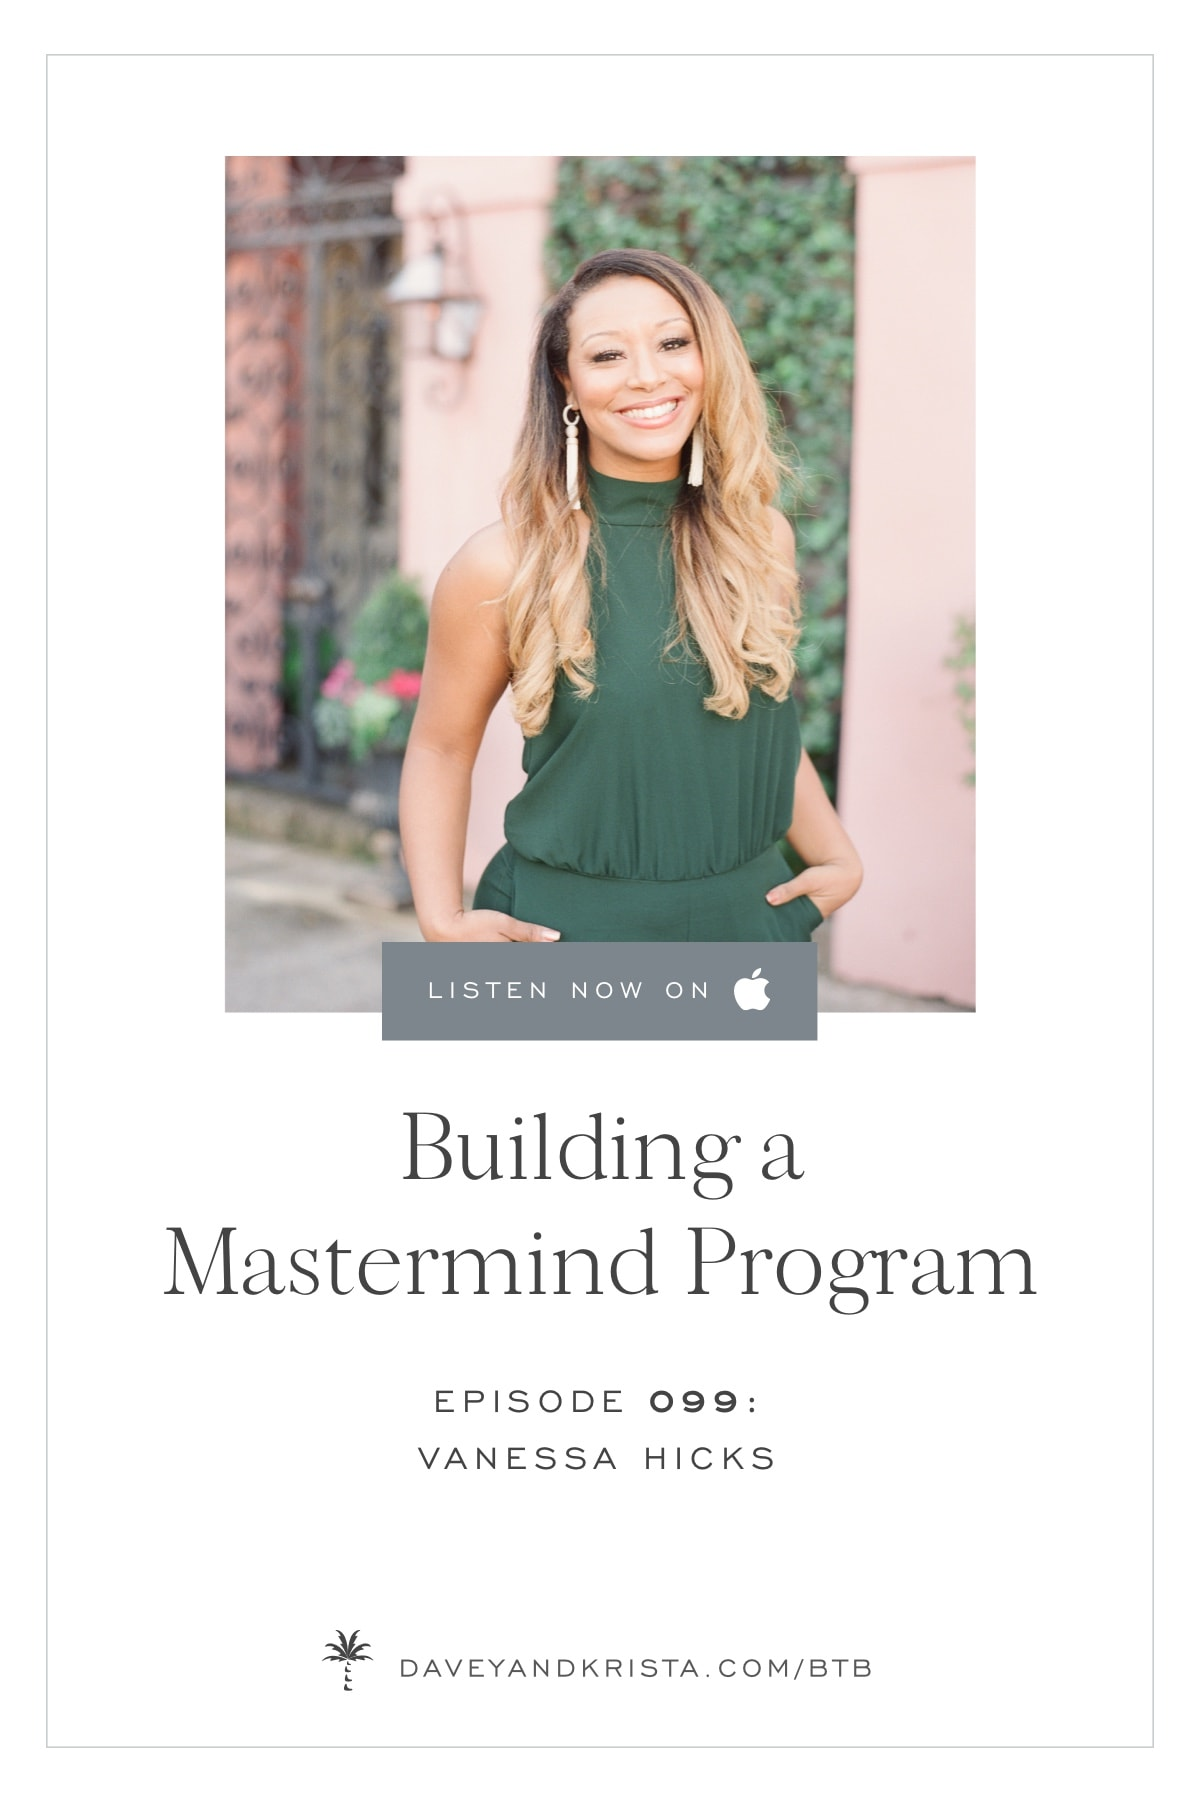 Building a Mastermind Program | Brands that Book podcast | Davey & Krista